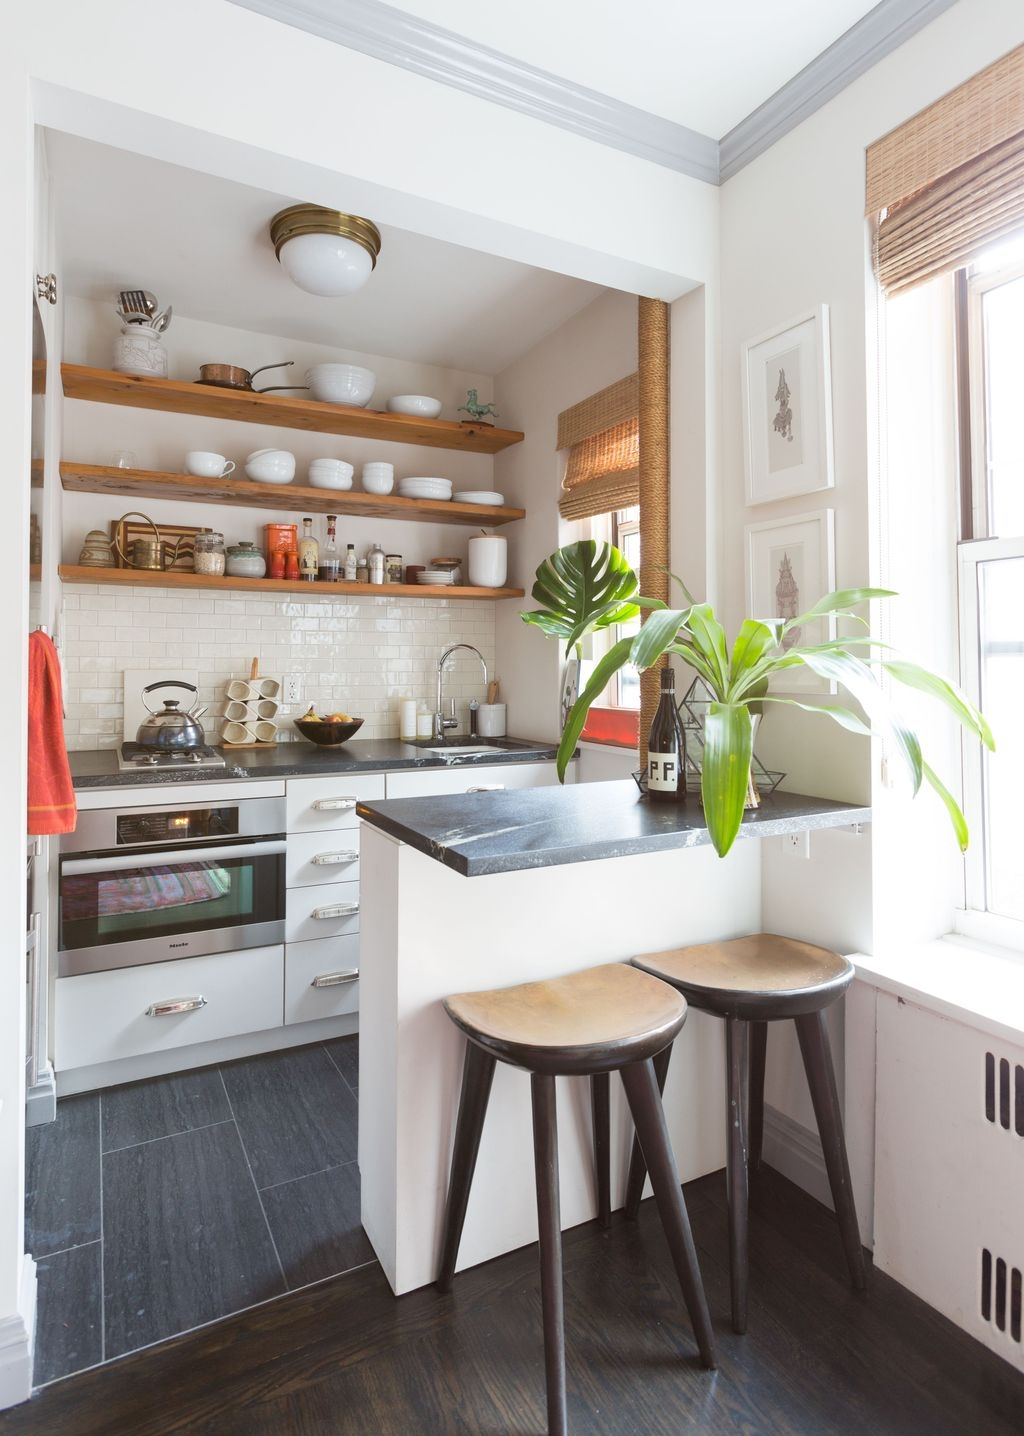 Totally Inspiring Small Kitchen Design Ideas For Your Small Home 22